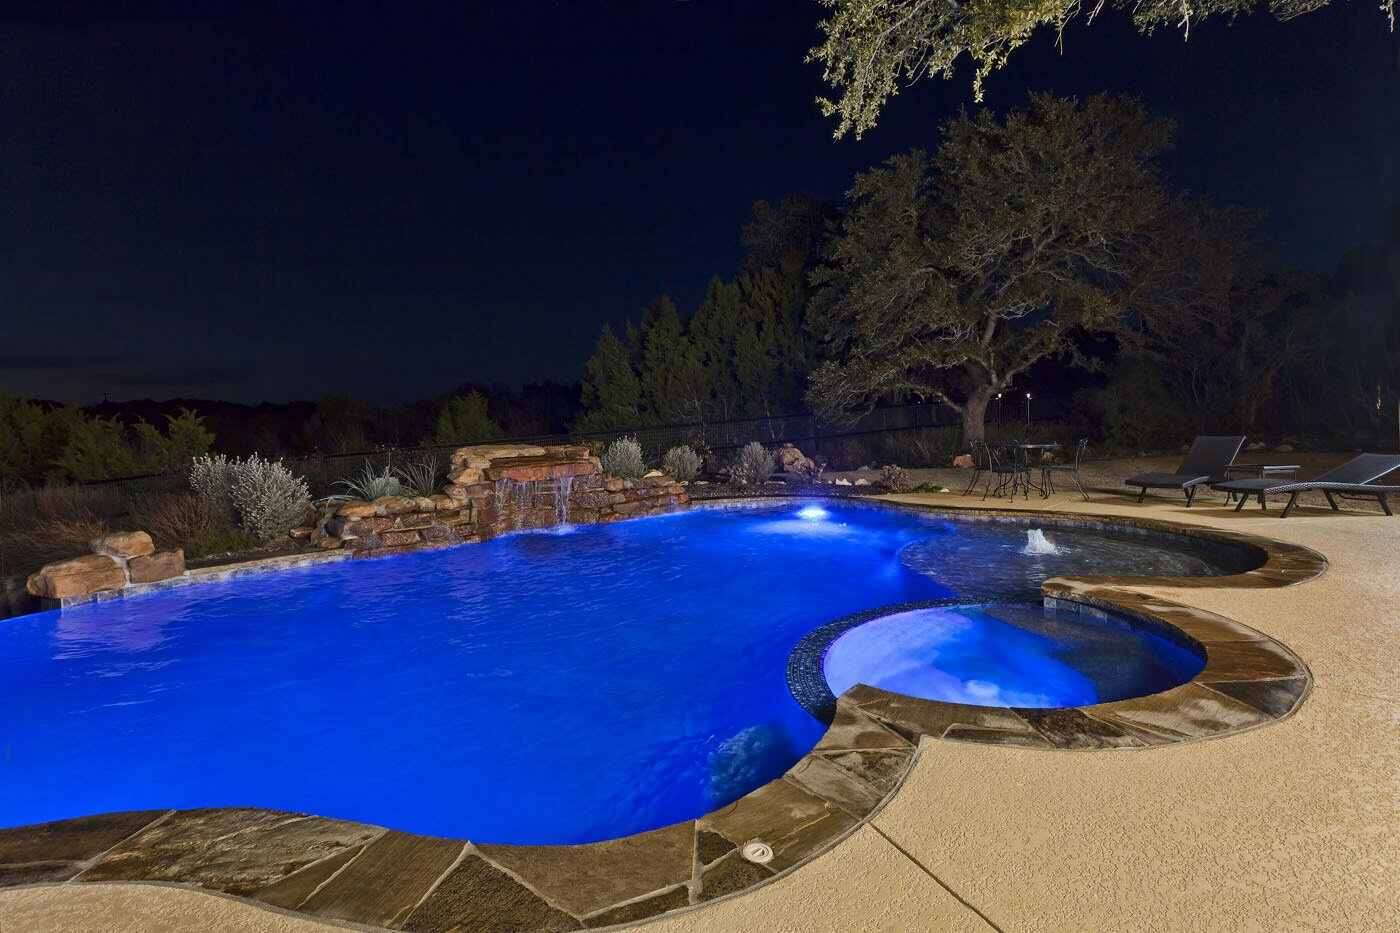 Pool with custom lighting